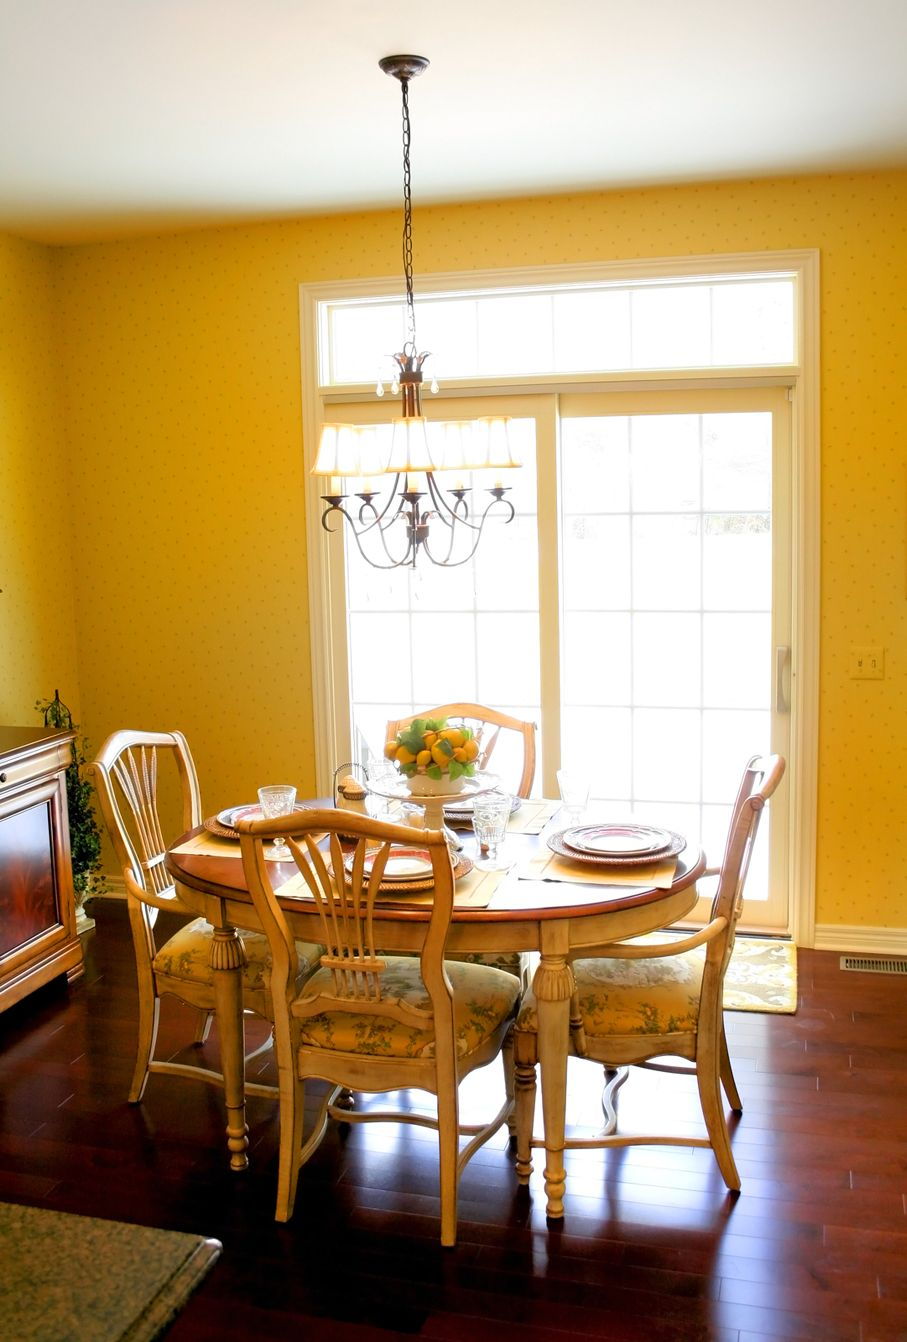 Breakfast table in bright colored house nook area